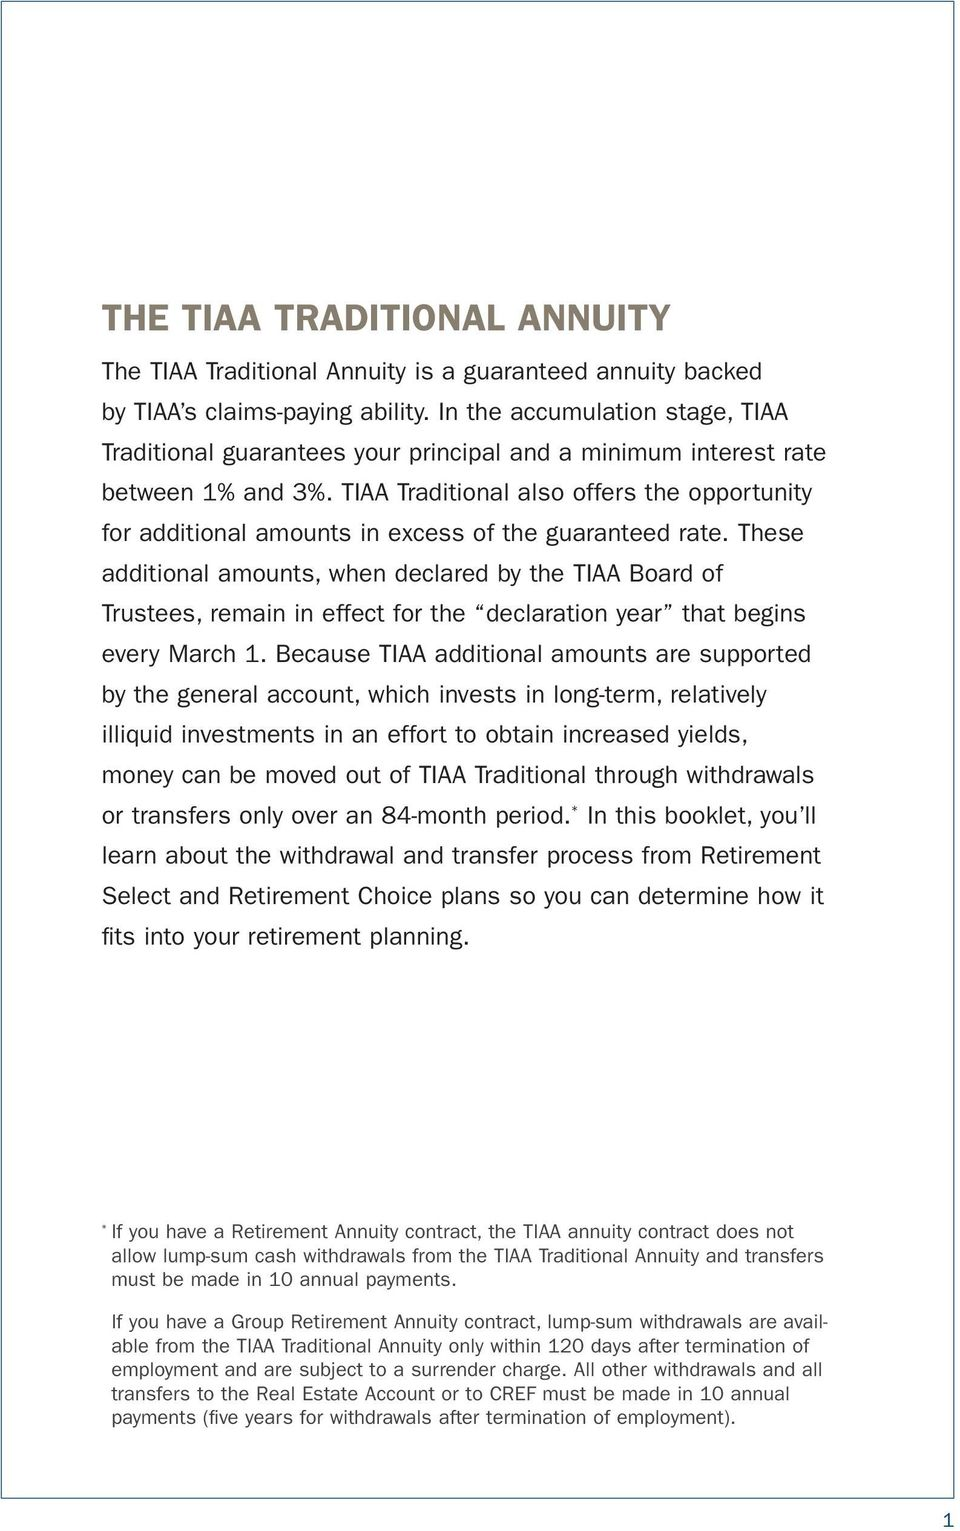 TIAA Traditional also offers the opportunity for additional amounts in excess of the guaranteed rate.